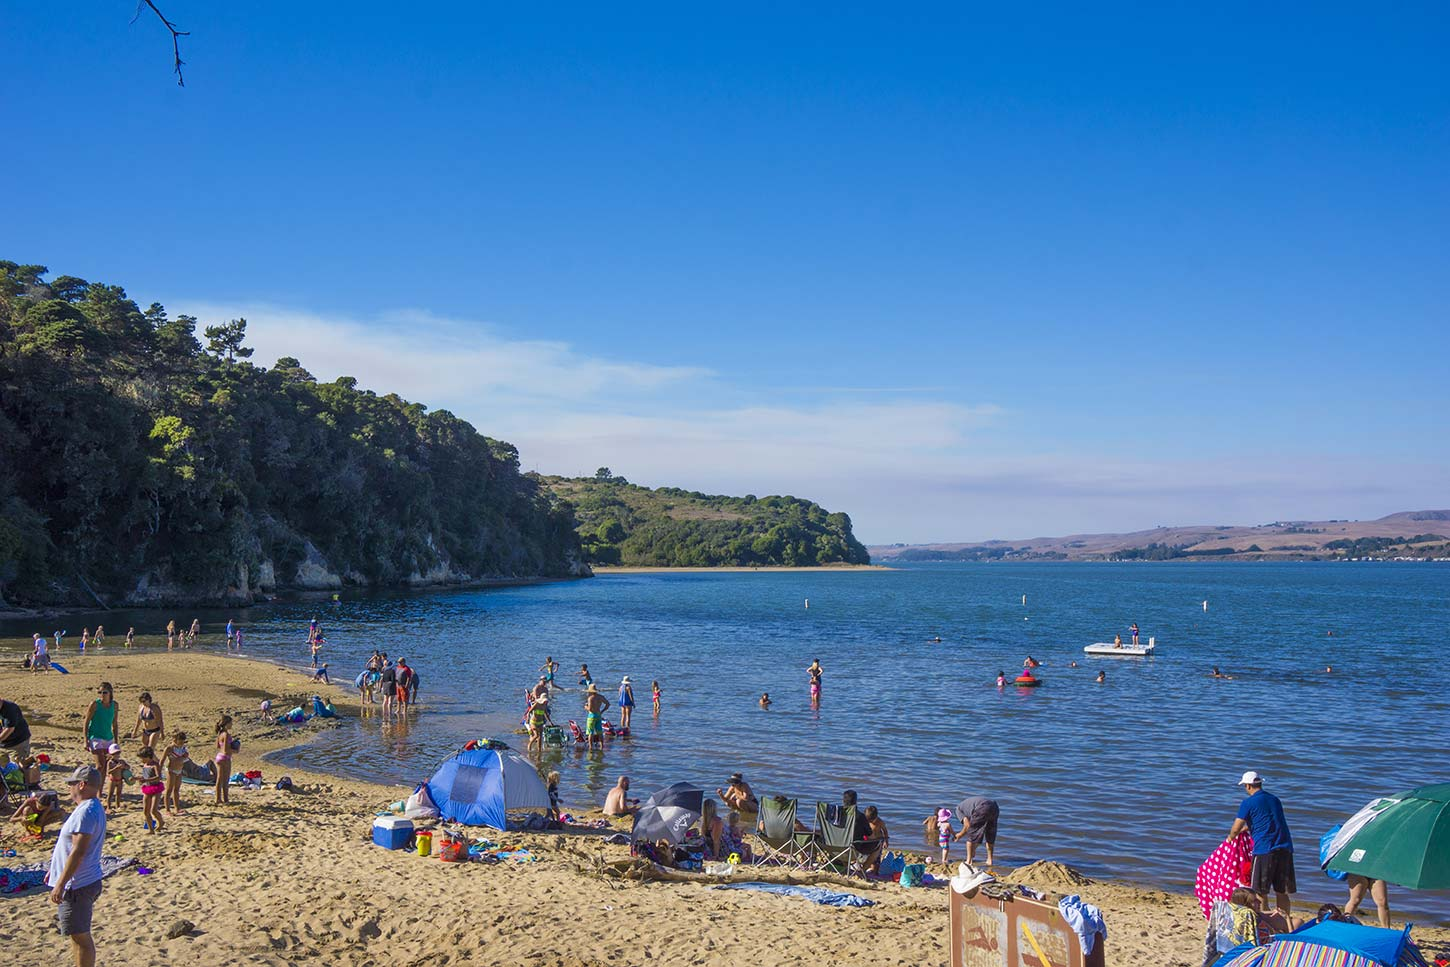 Heart S Desire Beach In Tomales Bay State Park Is The Most Crowded On Point Reyes